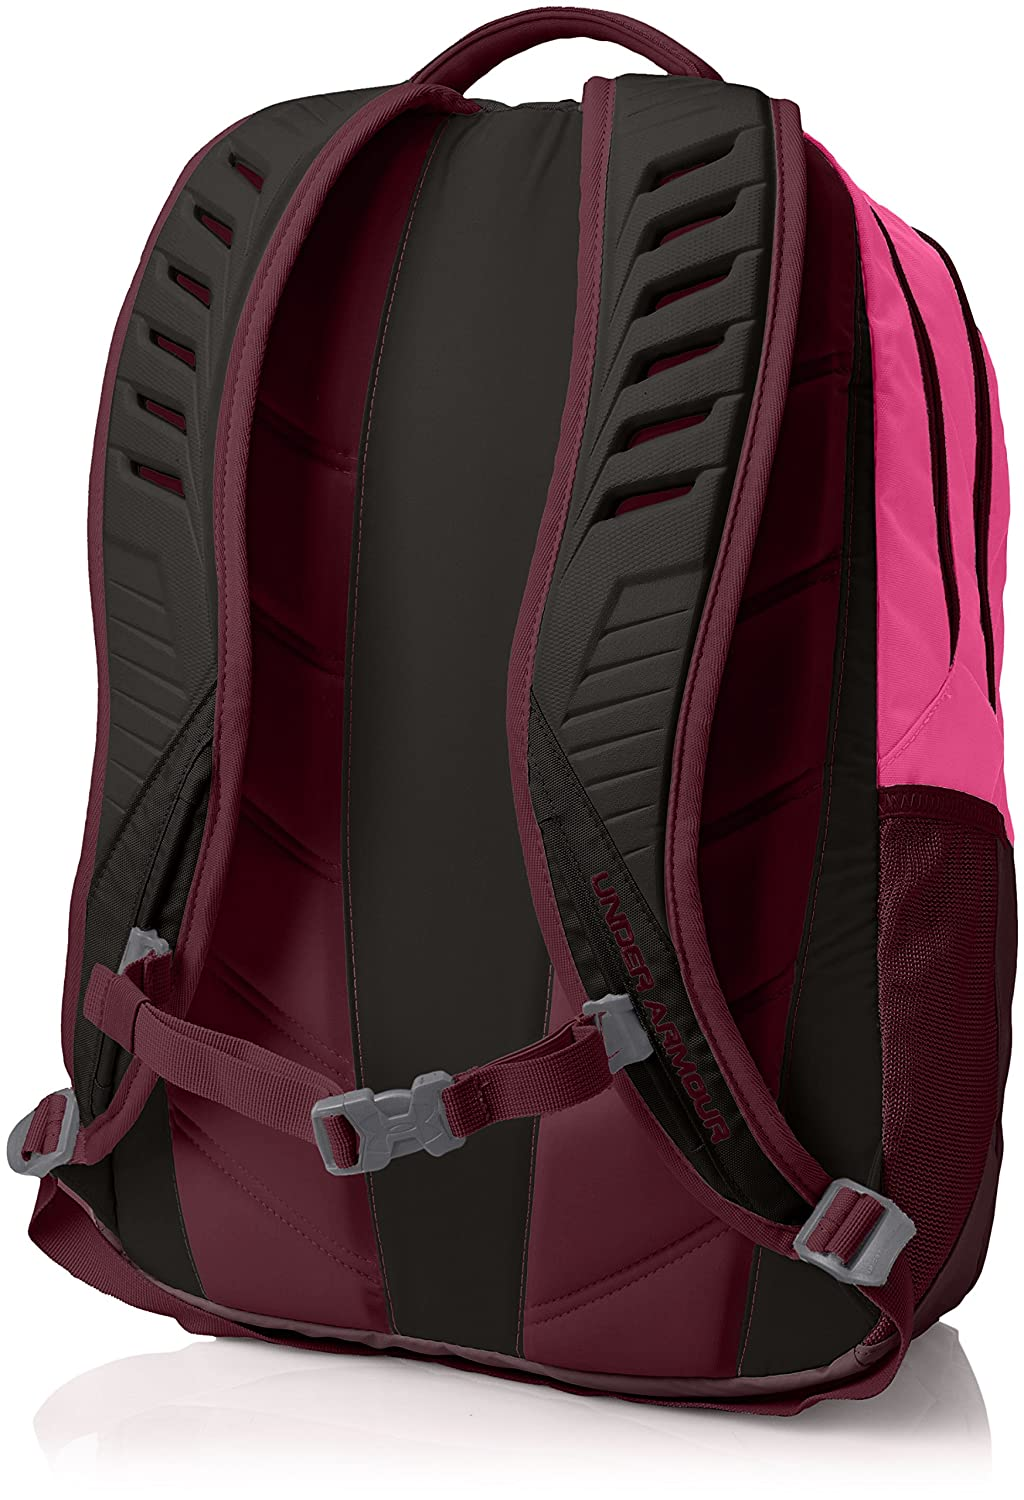 a209e1c052 Amazon.com  Under Armour Unisex Storm Camden II Backpack